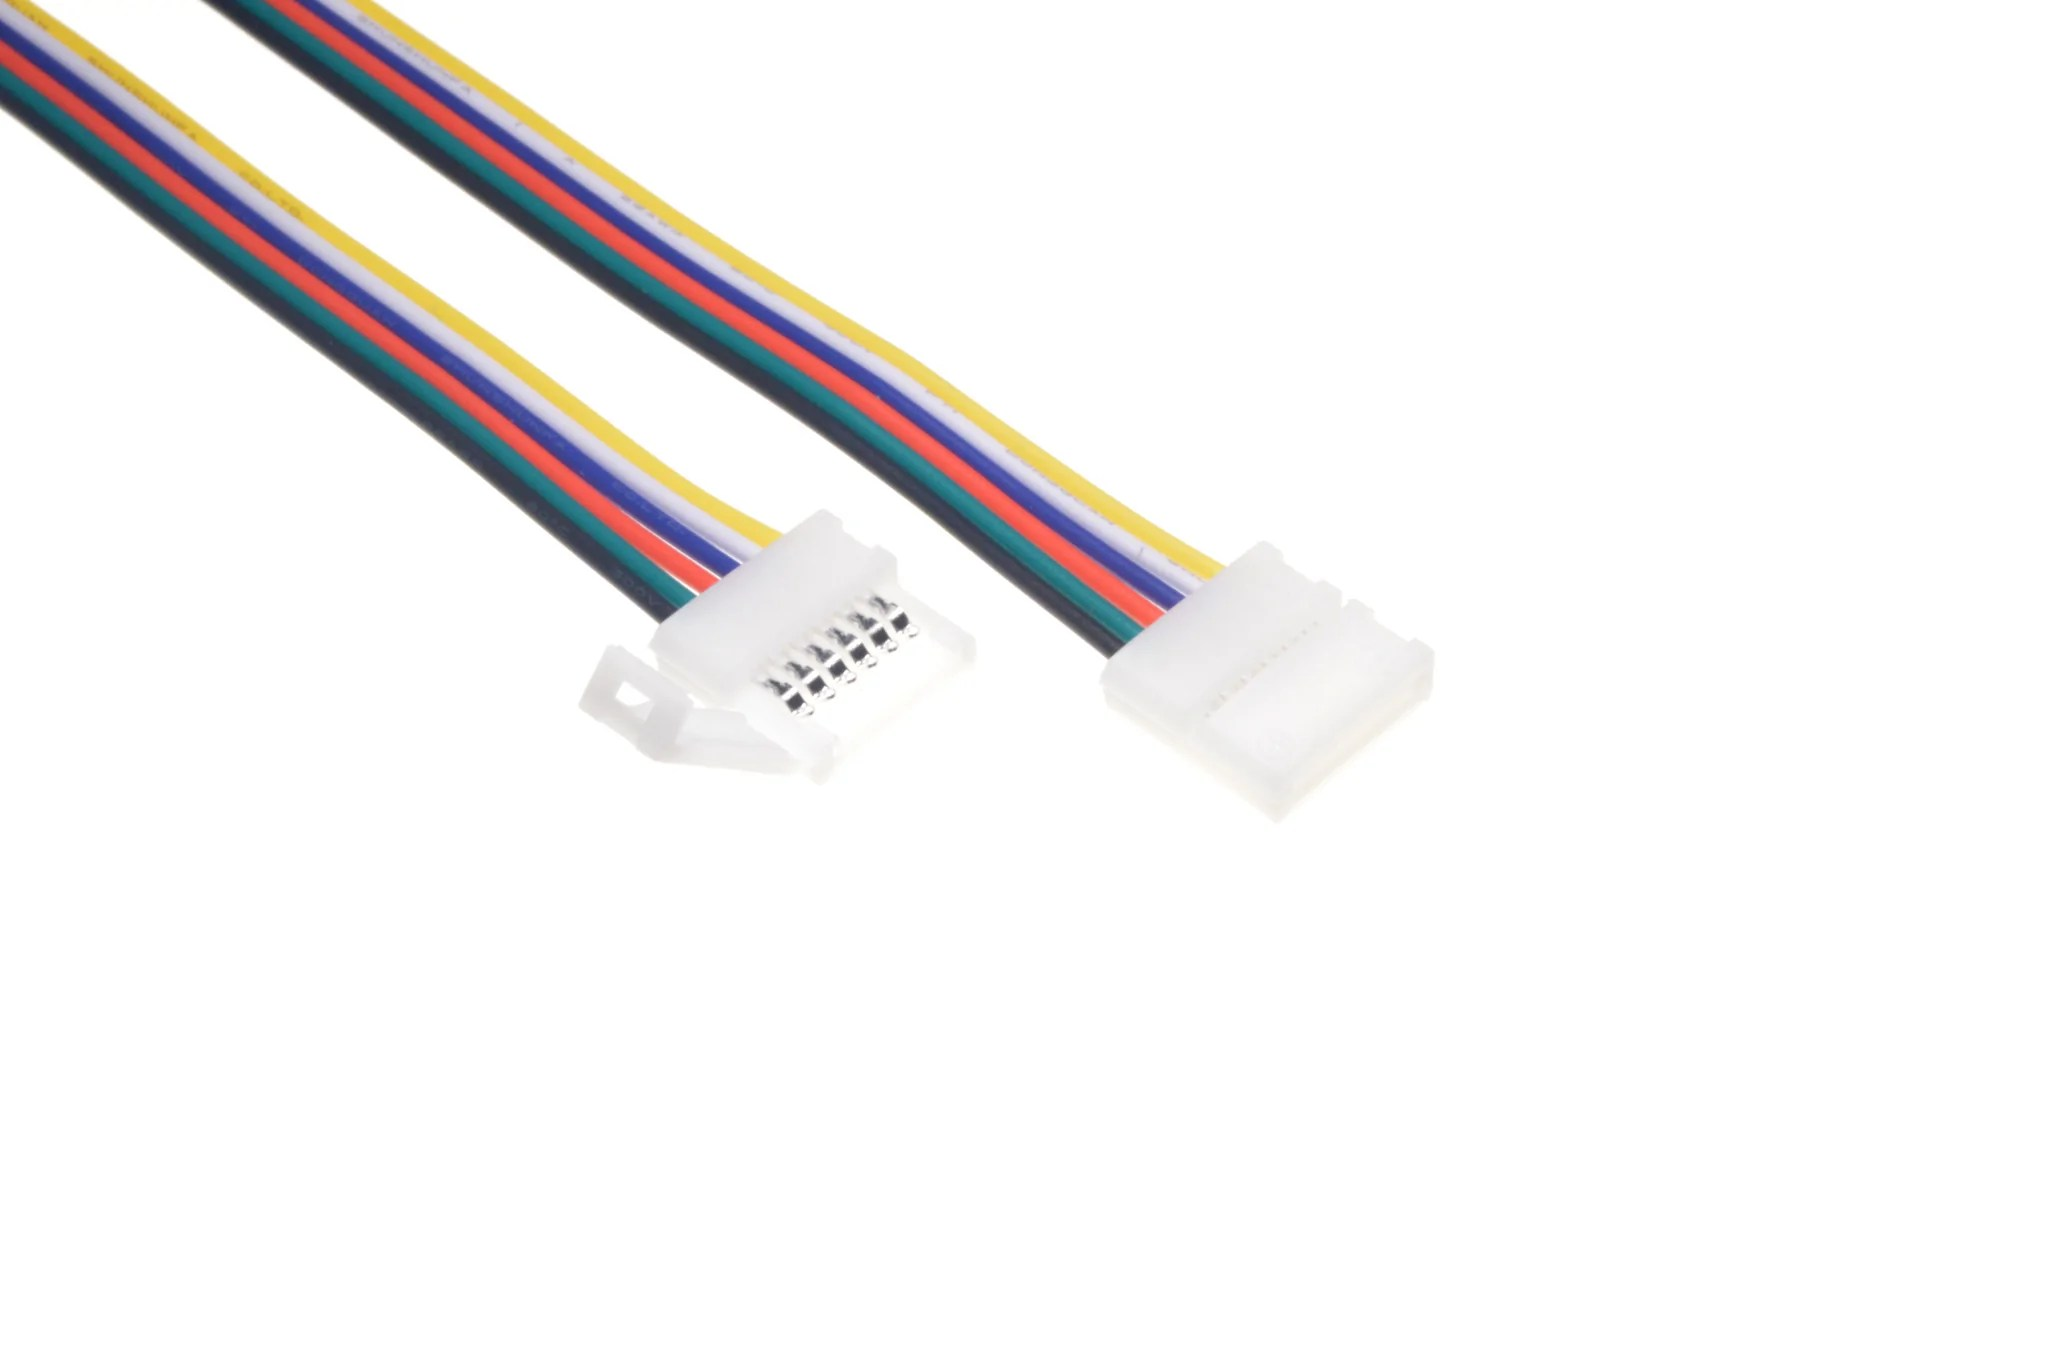 medium resolution of  pn 3075 led strip to wire solderless connector cable for 5 in